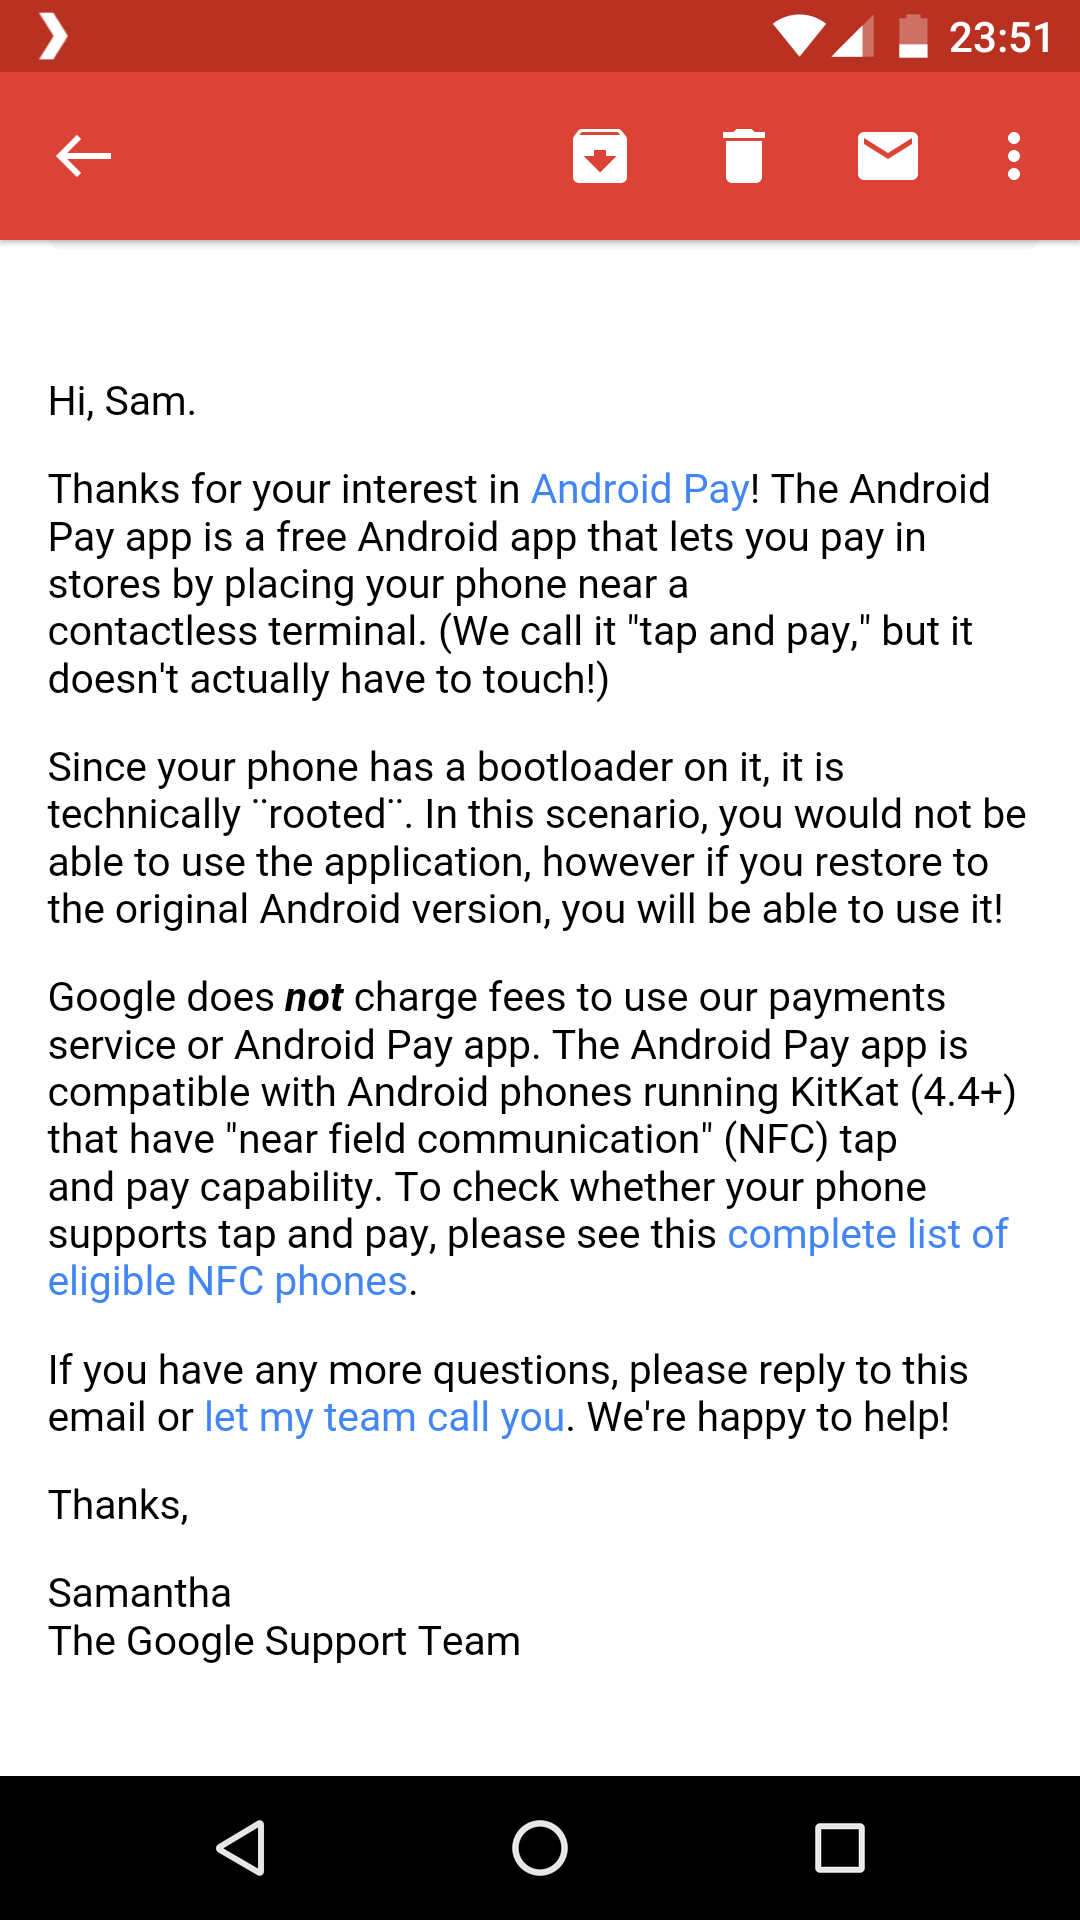 Google Support Email re: Android Pay